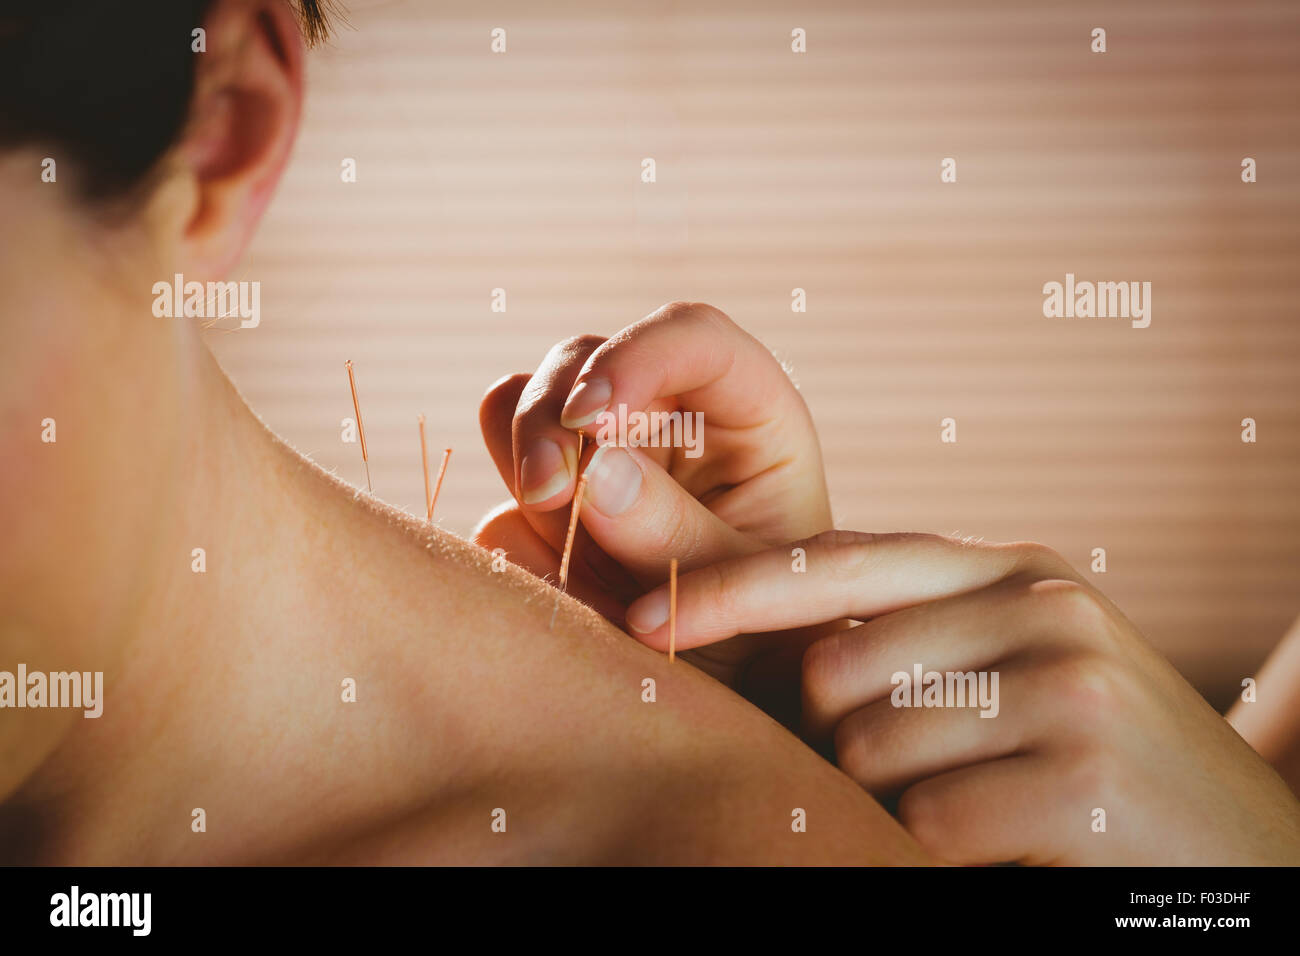 Young woman getting un traitement d'acupuncture Photo Stock